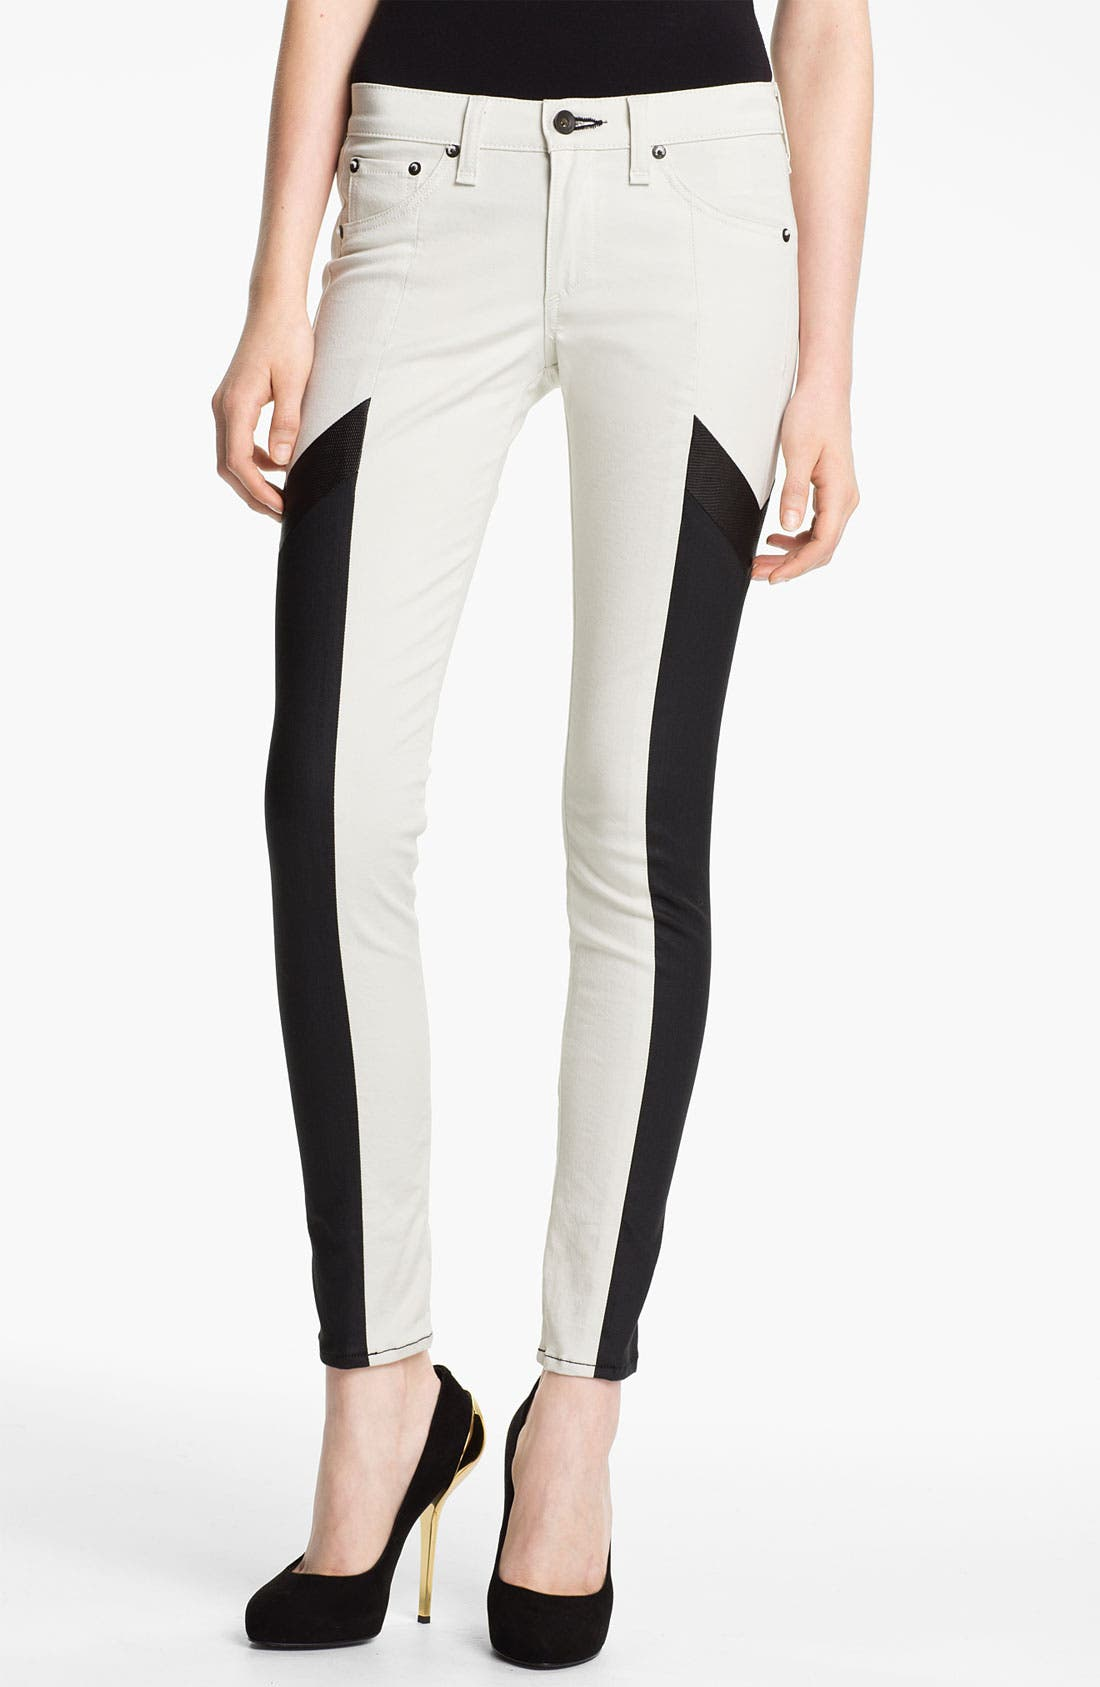 Alternate Image 1 Selected - rag & bone 'Grand Prix Motocross' Paneled Leggings